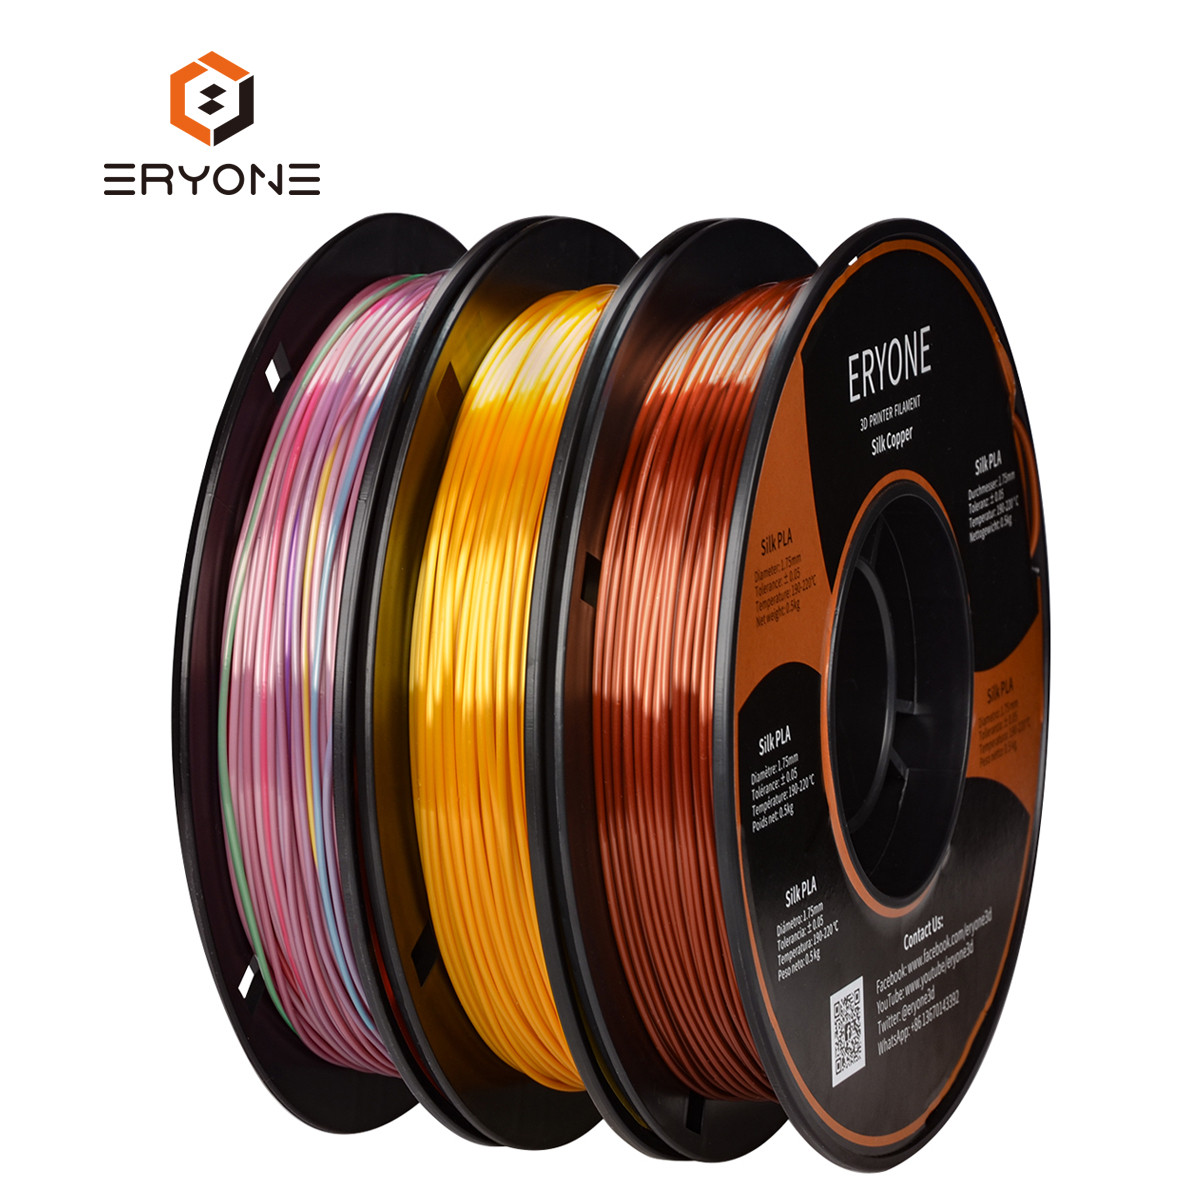 Eryone Silk Gold Copper Mini Rainbow PLA Filament Bundle 1.75mm 3 Spools/Pack Dimensional Accuracy 1.5kg  / pack